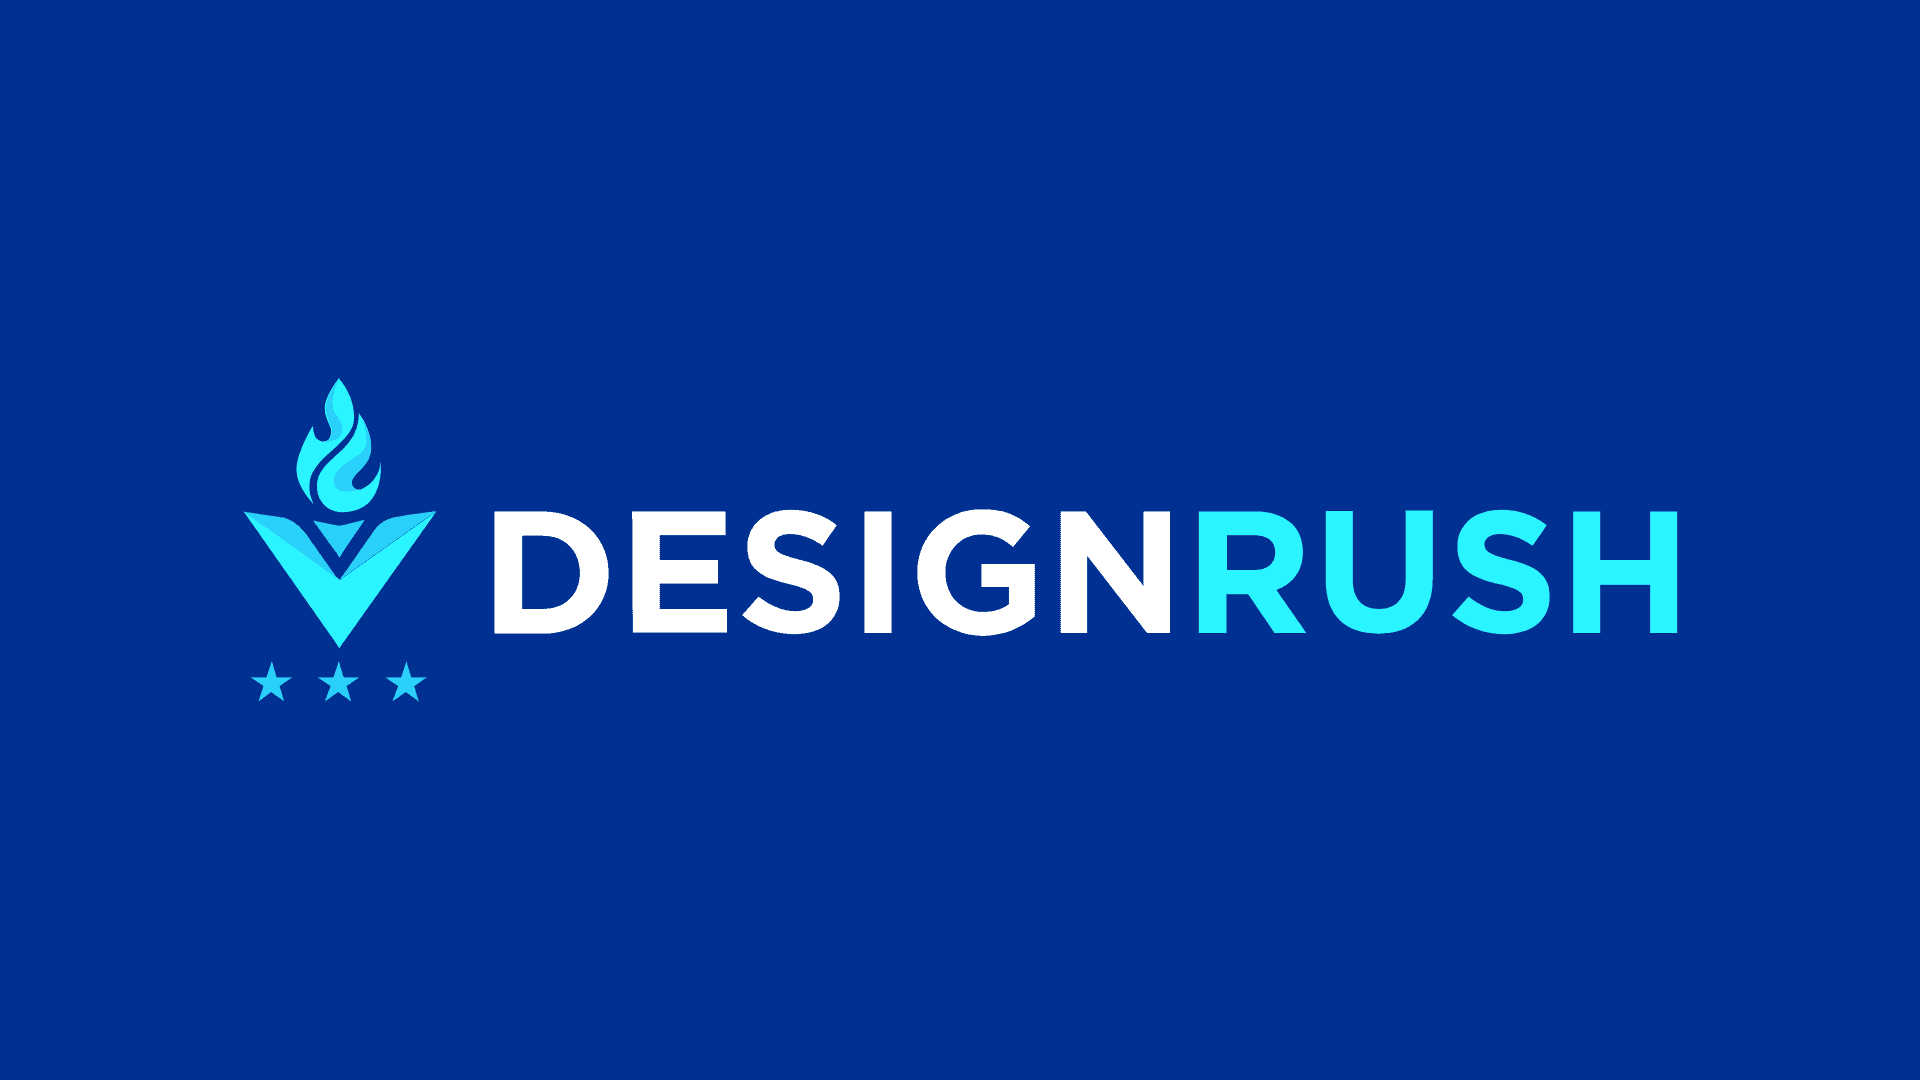 NameStormers, A Top Creative Agency to Hire in 2021, According to DesignRush